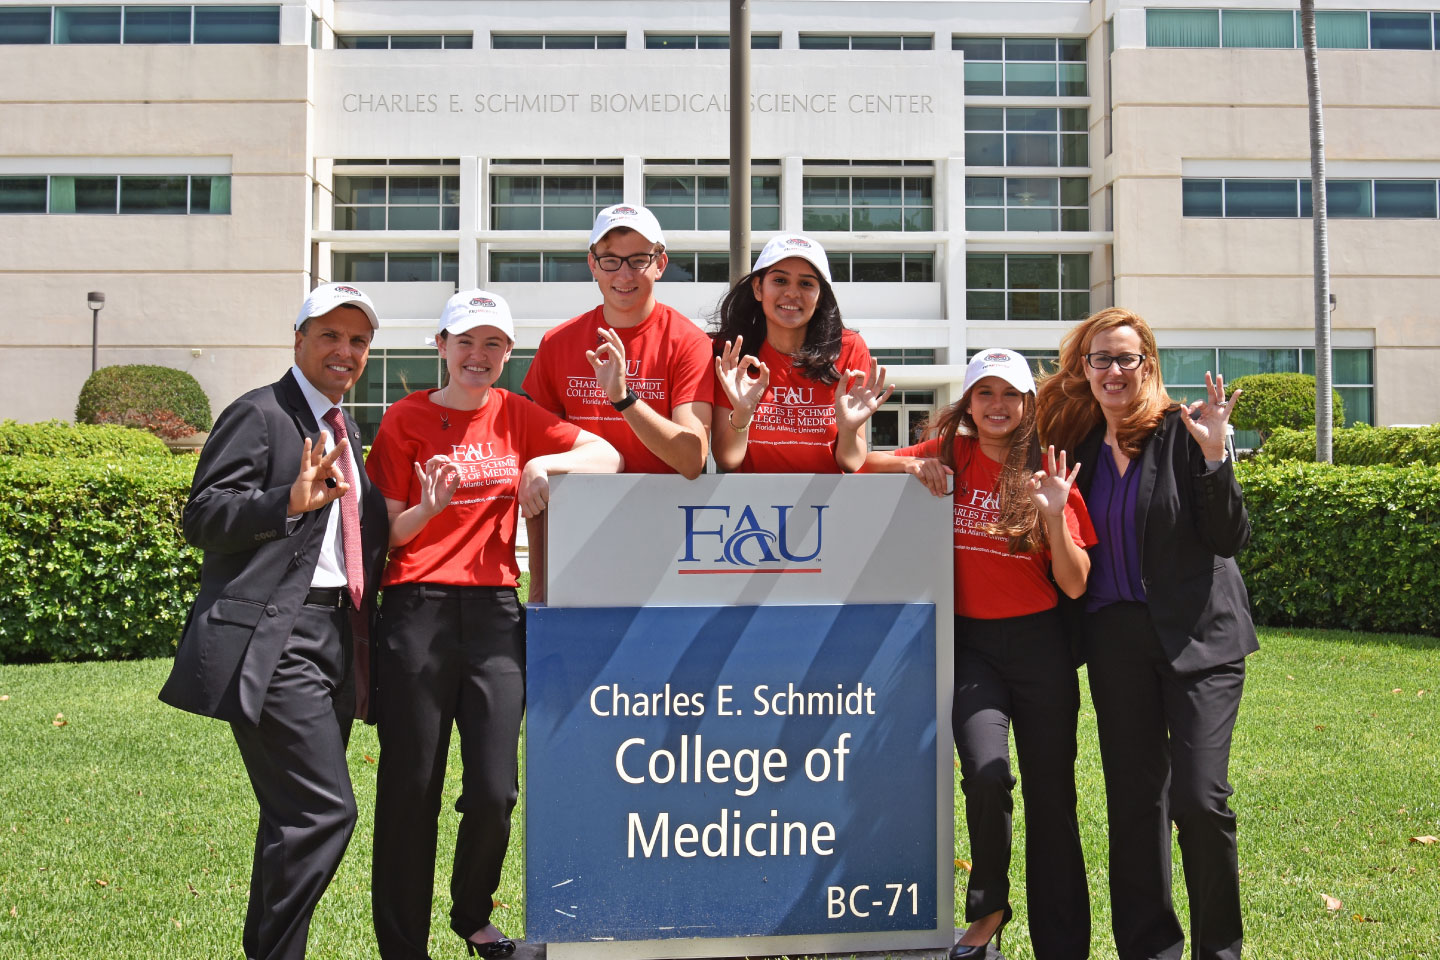 The first-of-its-kind pipeline program to be launched in the United States, M.D. Direct places high school students from FAU High School directly in-line for medical school at FAU, jumpstarting their careers as young, aspiring physicians-to-be.